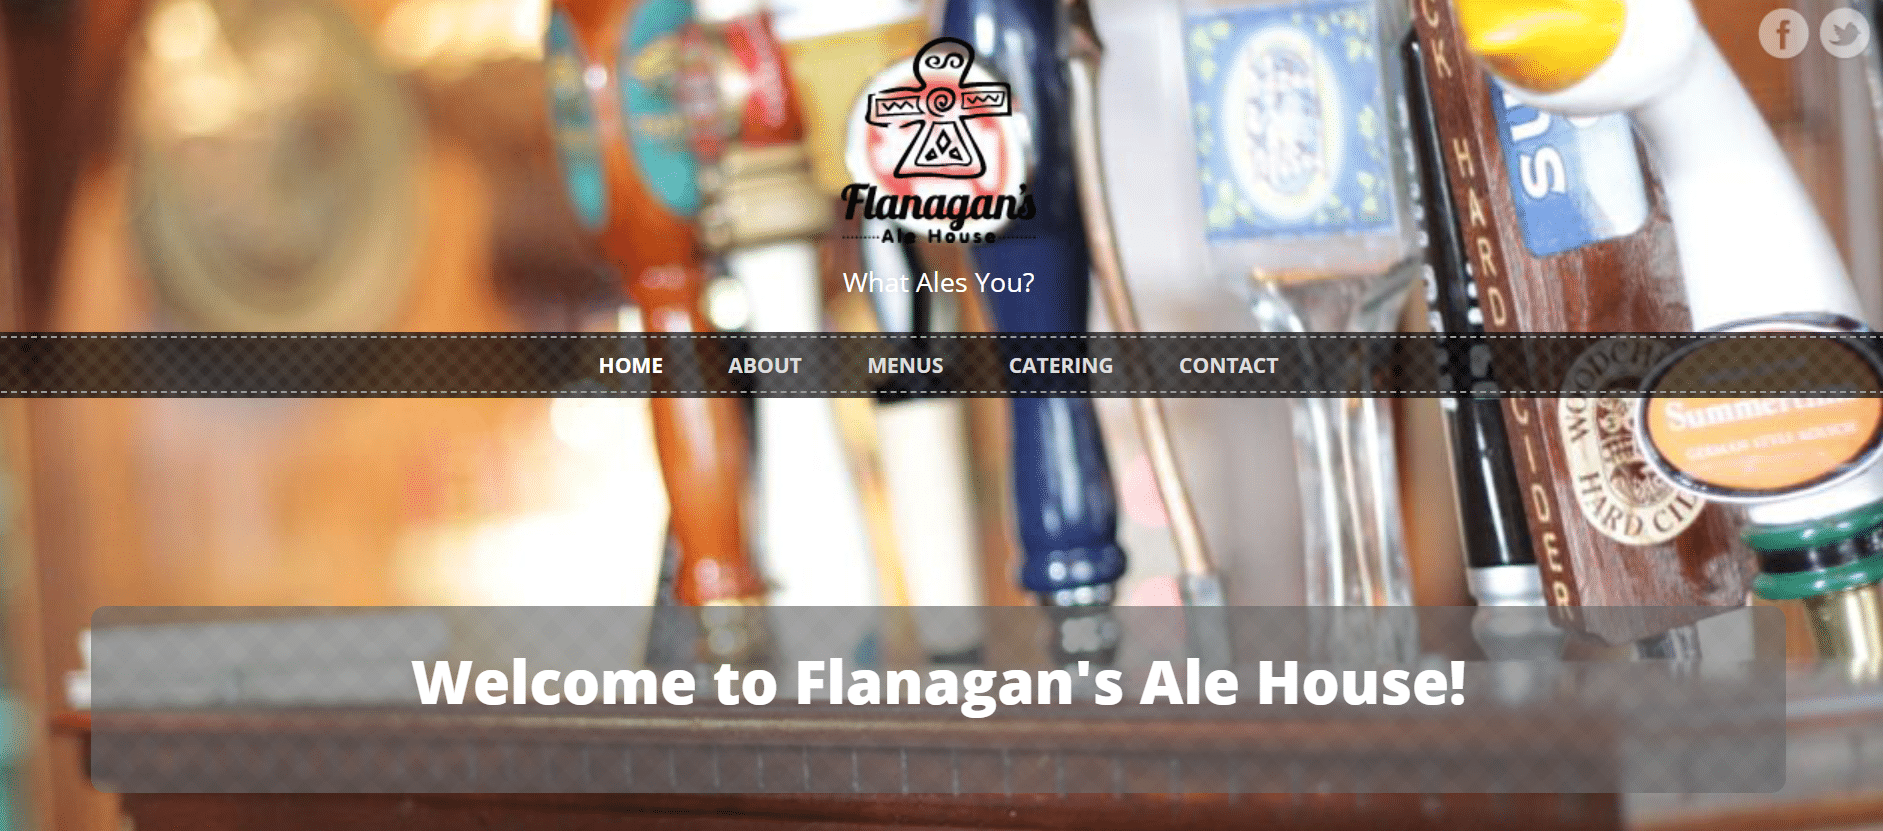 Flanagan's Ale House